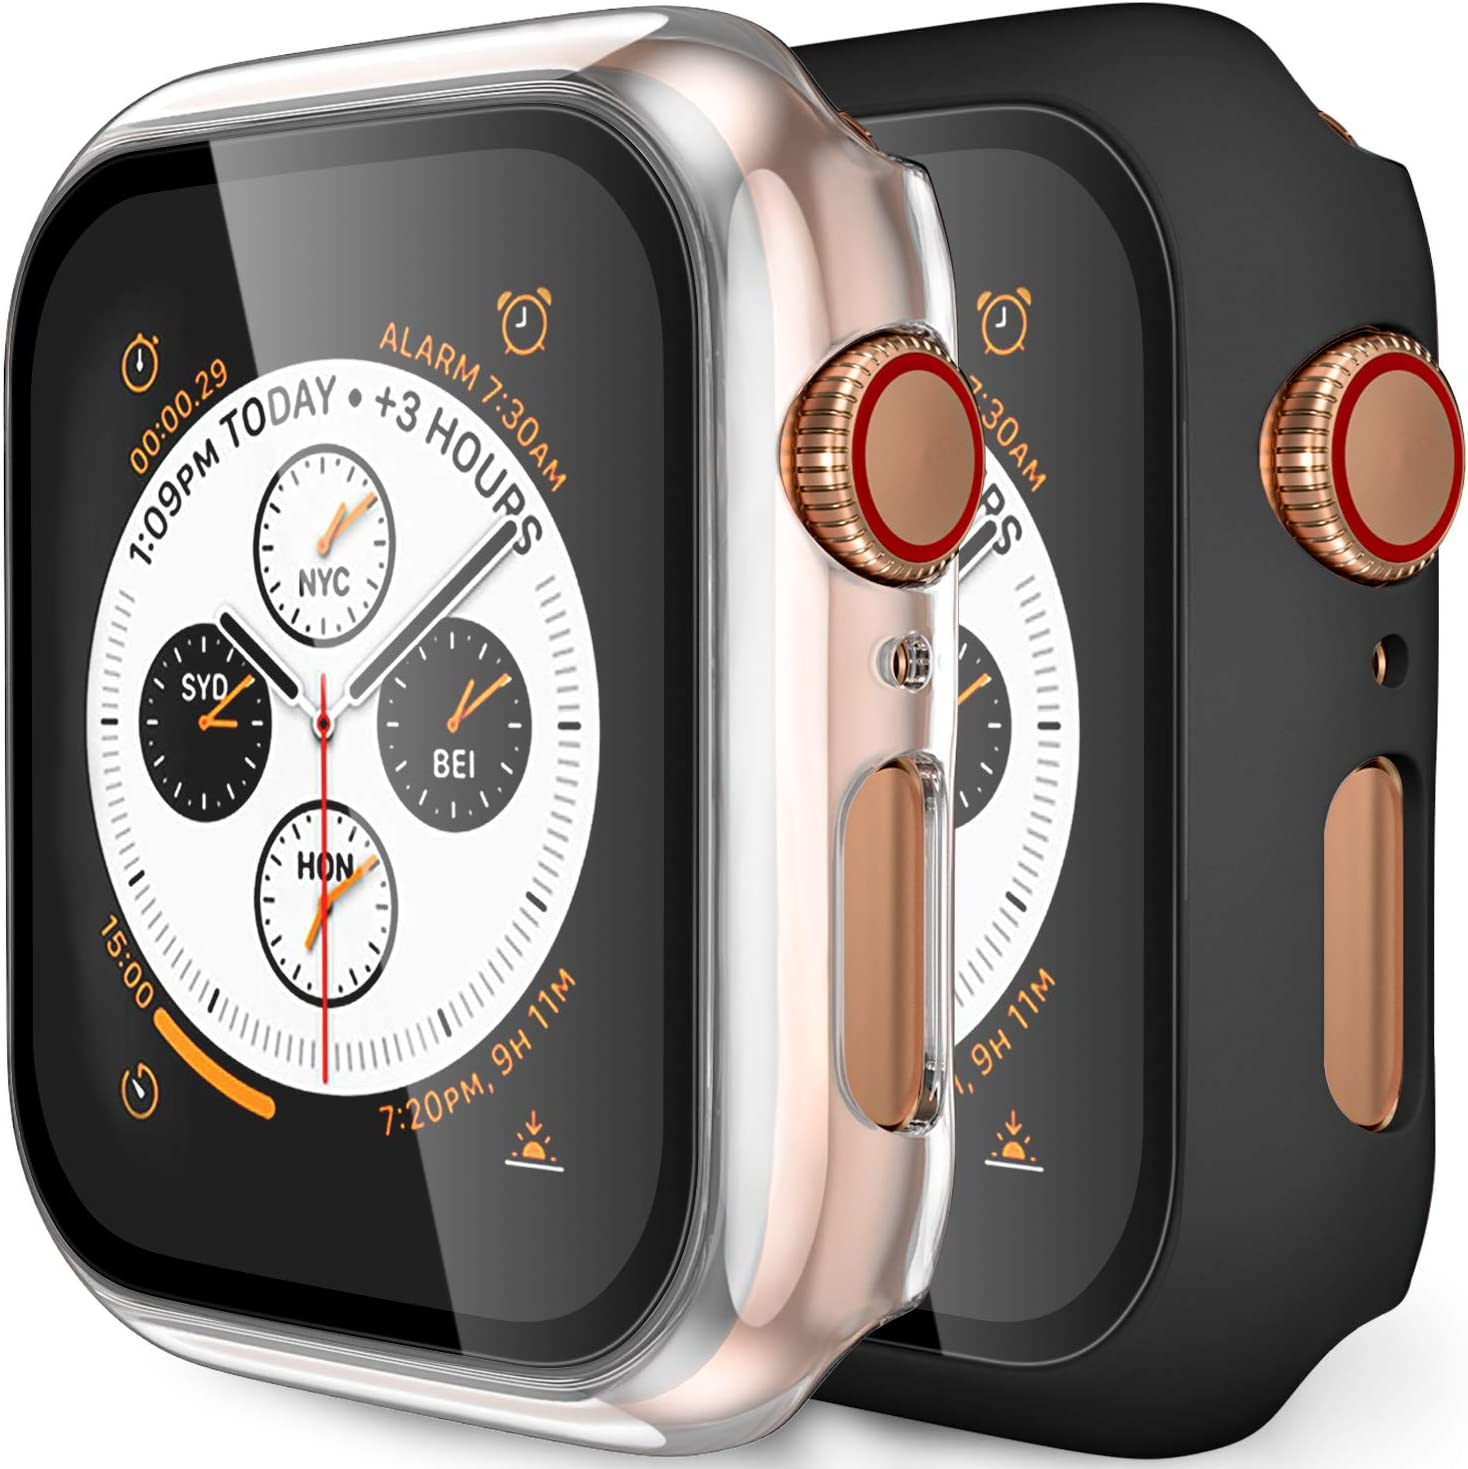 (2 Pack) GEAK Hard Case for Apple Watch 38mm Series 3 with Screen Protector, Full Body Protective Bumper Case Cover for iWatch Series 3/2/1, Matte Black/Clear